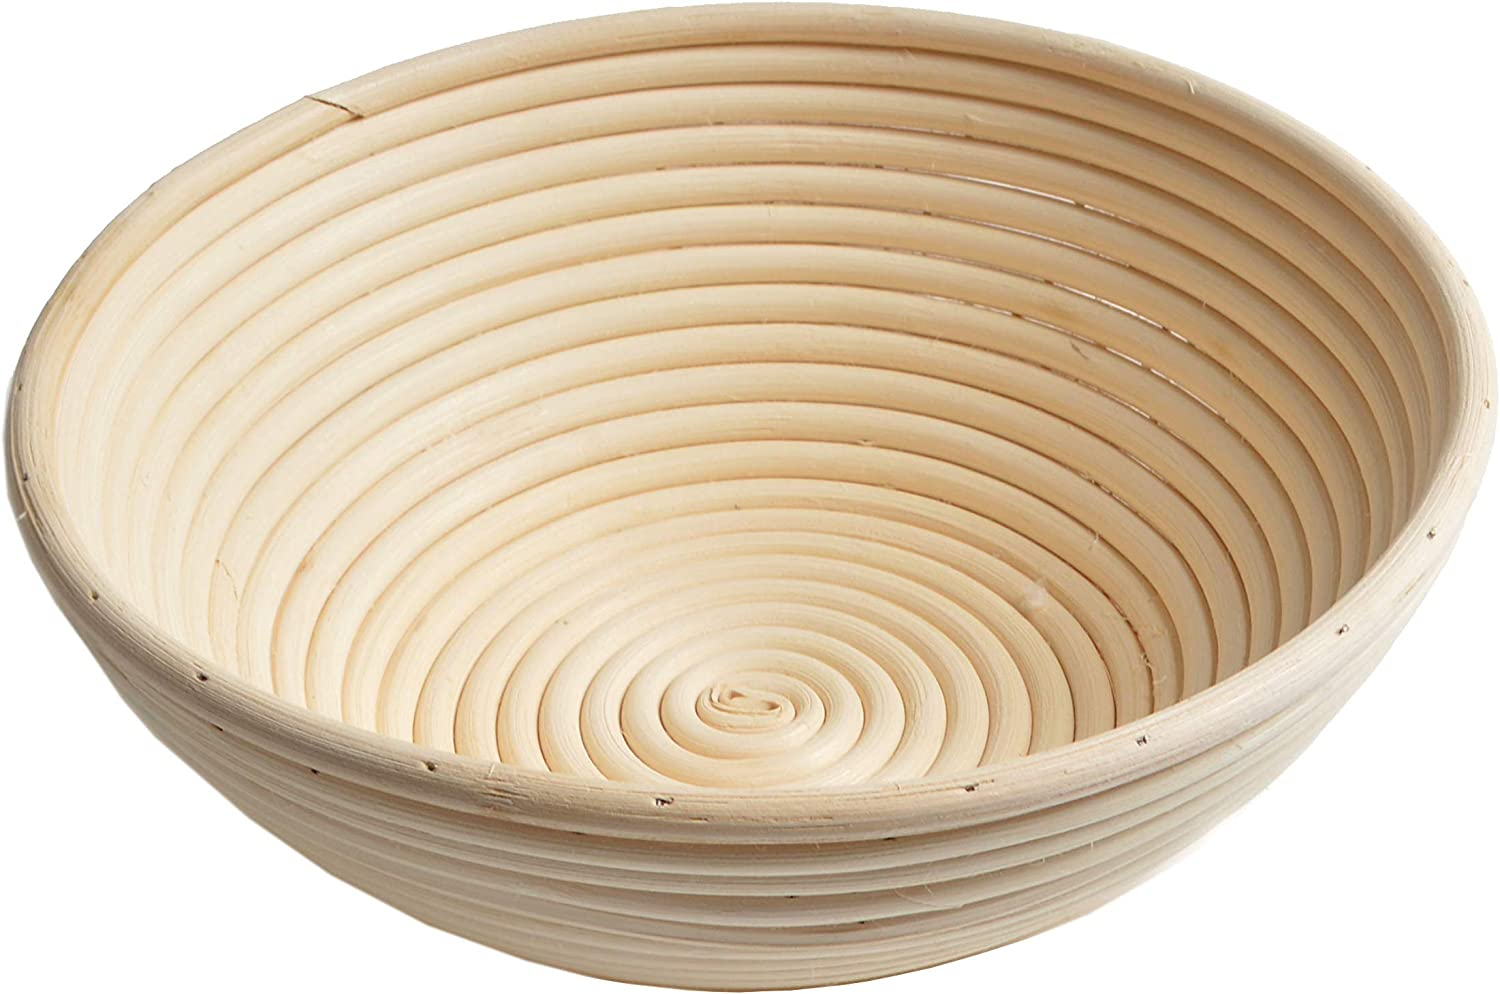 22x8.5cm Round Oval Long Bread Proving Basket Rattan Proofing Basket Bannetons Brotform Can Hold 500g Dough